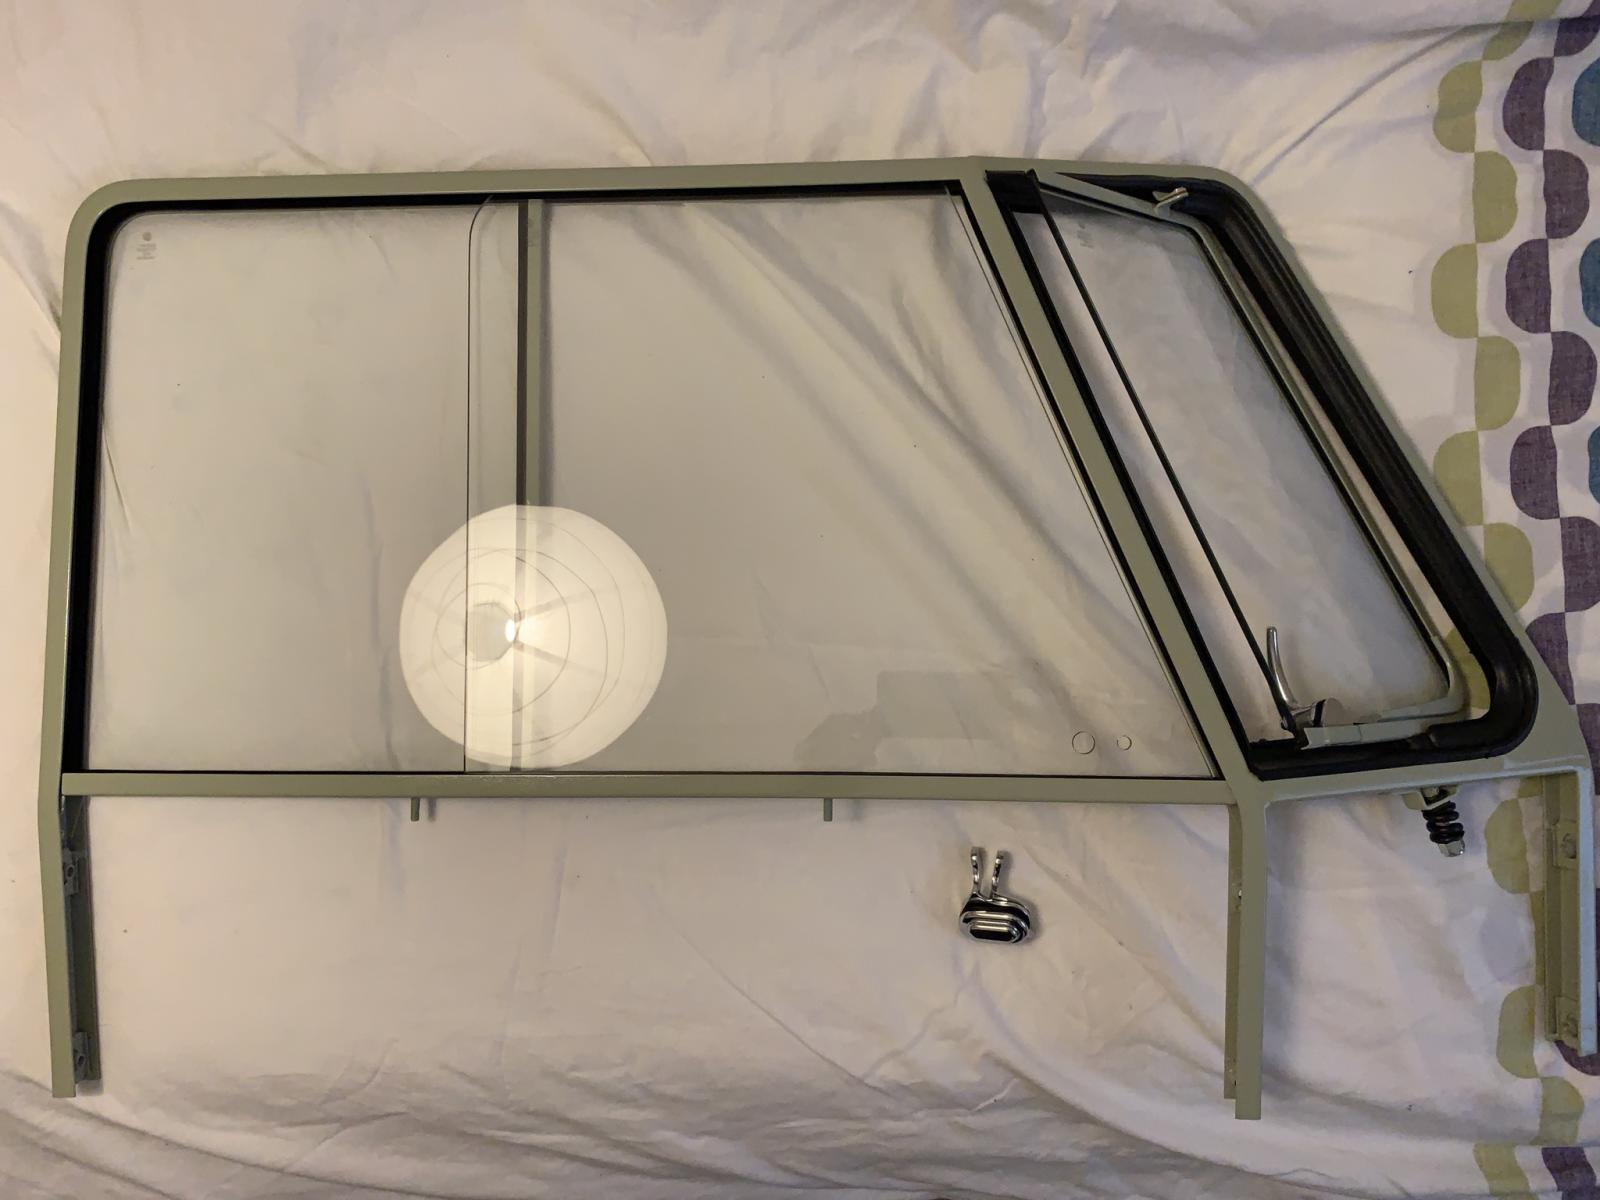 Vent window assembly